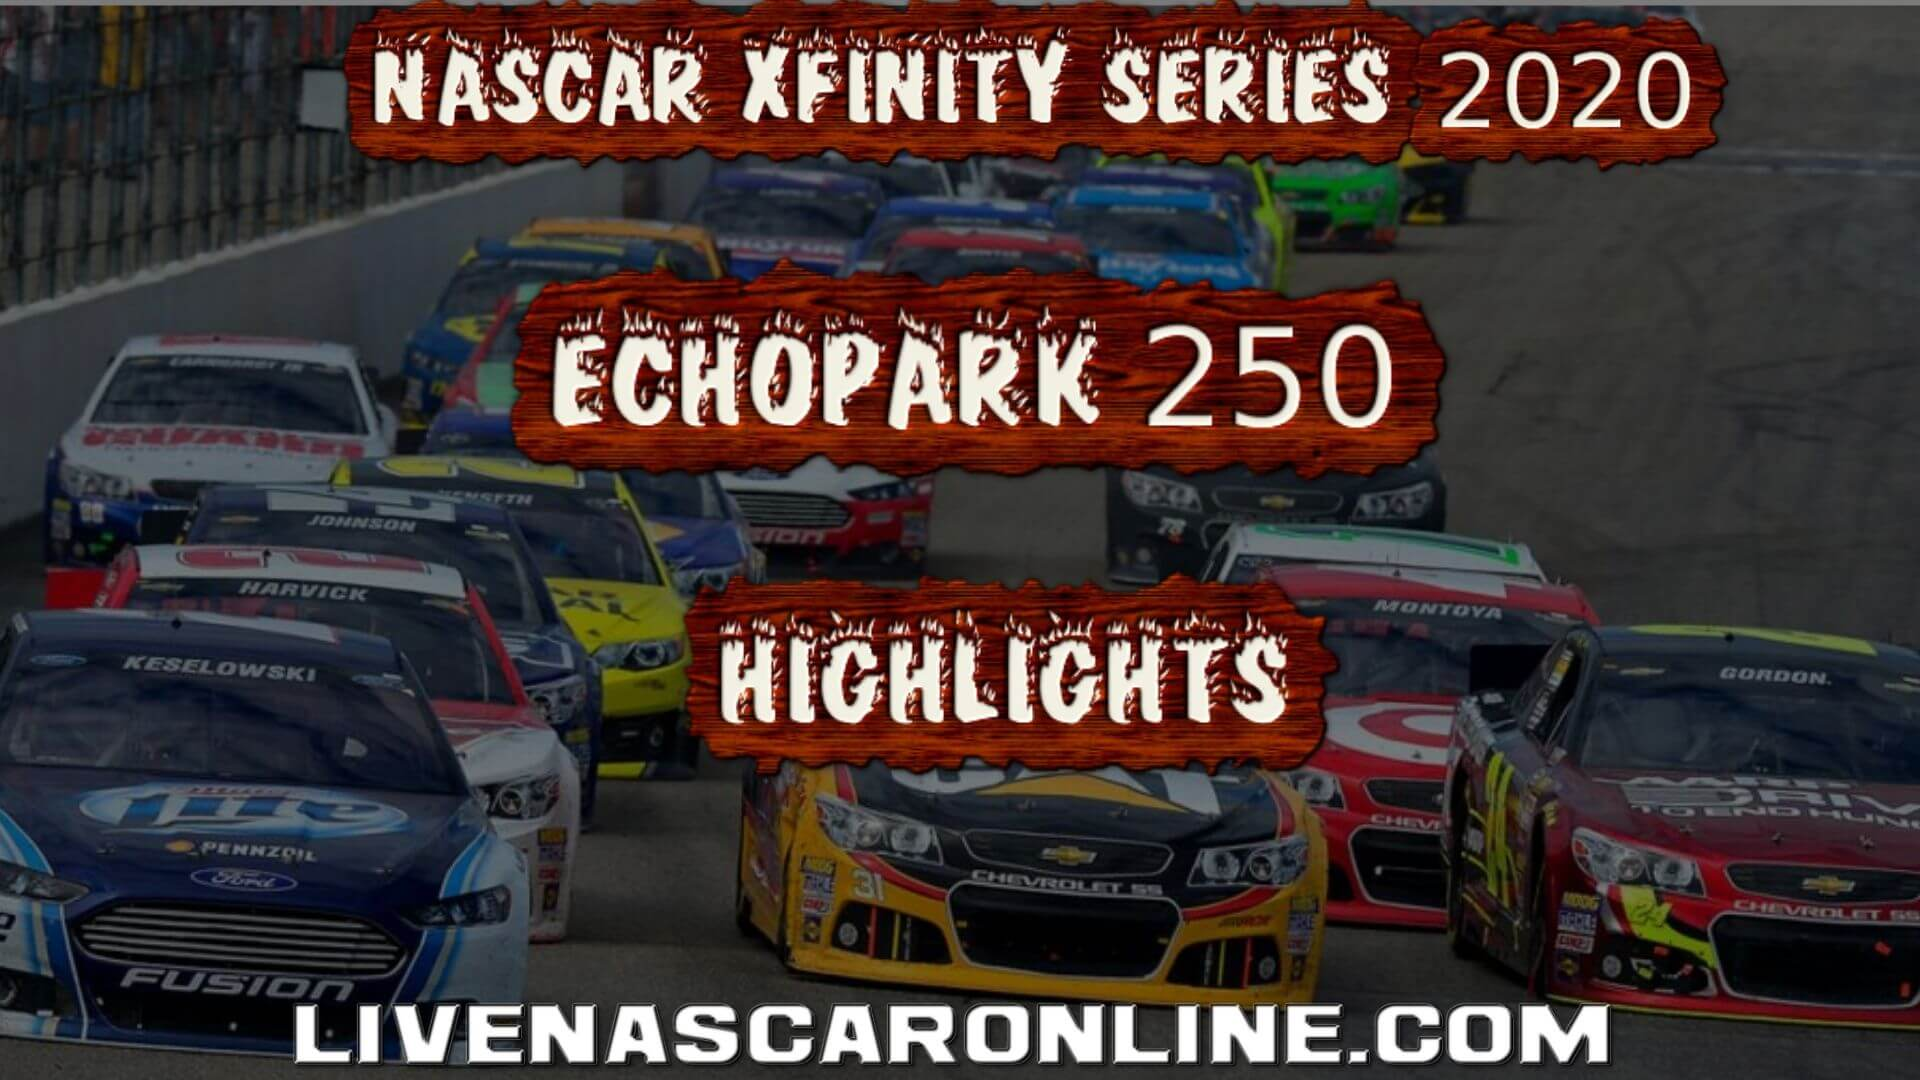 ECHOPARK 250 Xfinity Series Highlights 2020